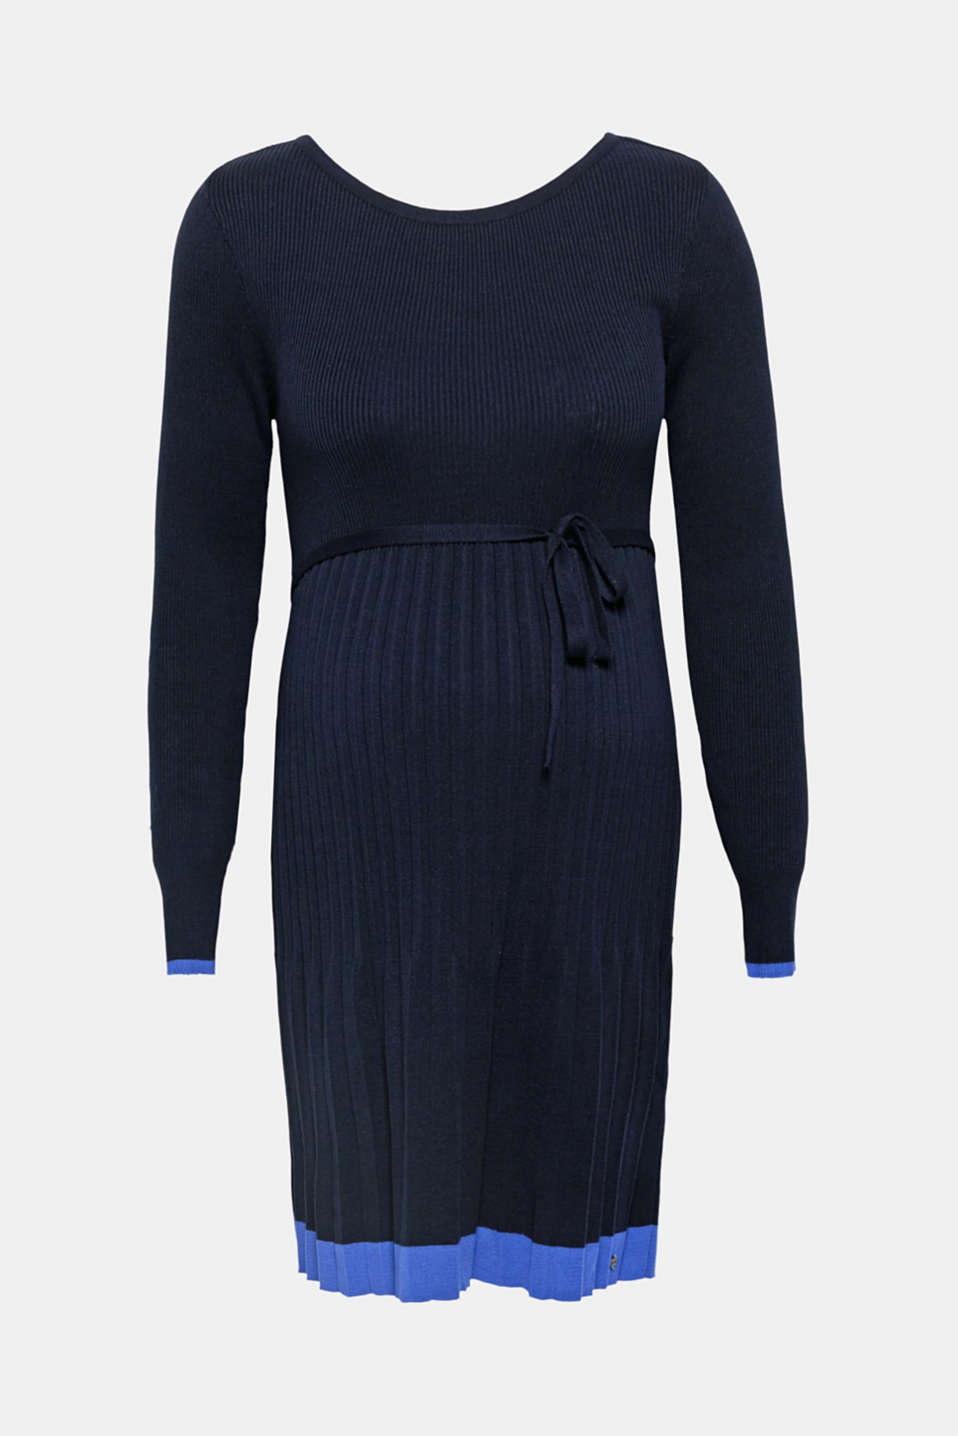 Chic and super comfy: This fine knit dress looks modern thanks to the pleated skirt and stripes in a contrasting colour on the sleeve ends and hem!